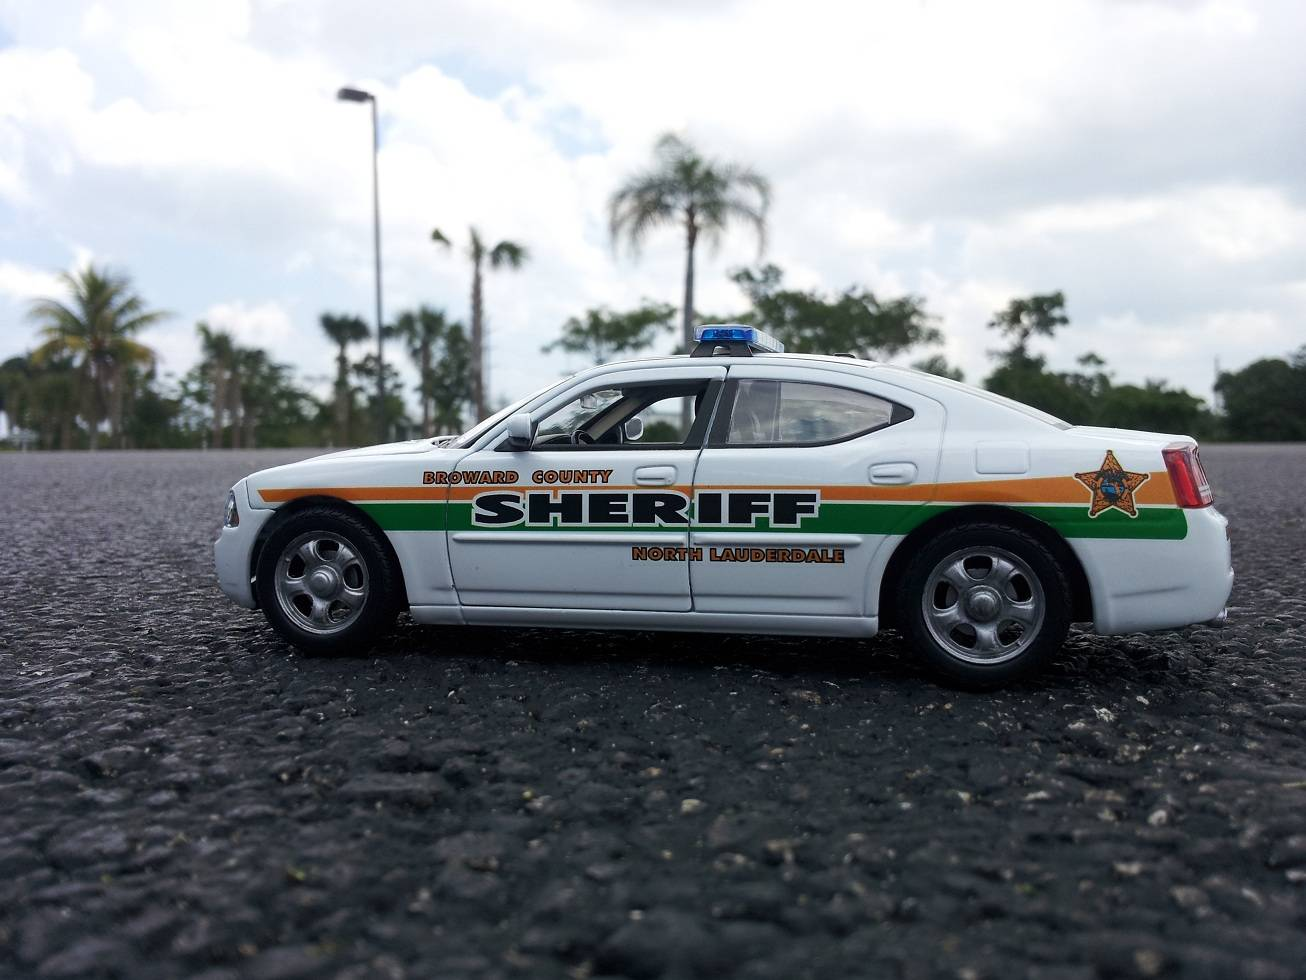 roward County Sheriff's Office, Florida (1/27 Charger)